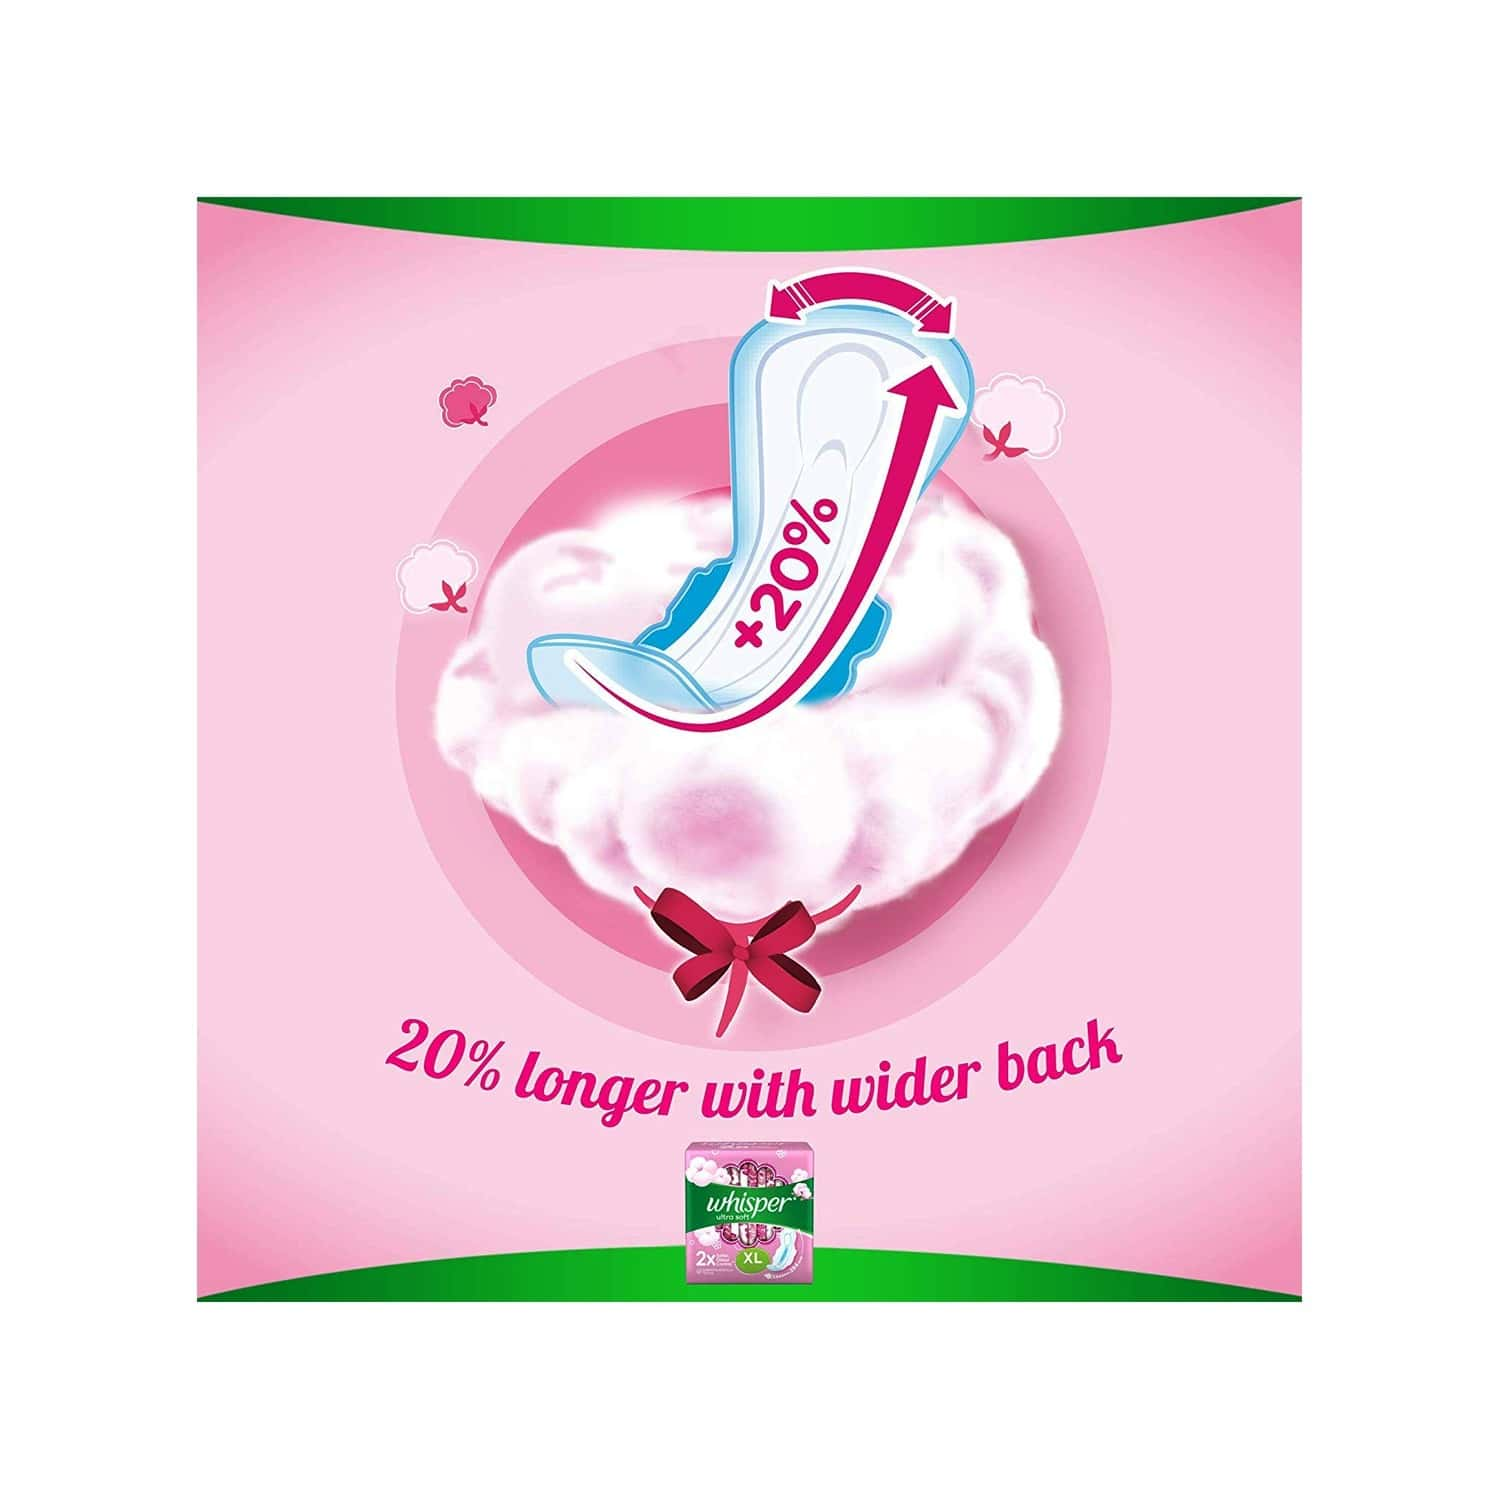 Whisper Ultra Soft  Sanitary Pads  Pack Of 7 (xl Plus)